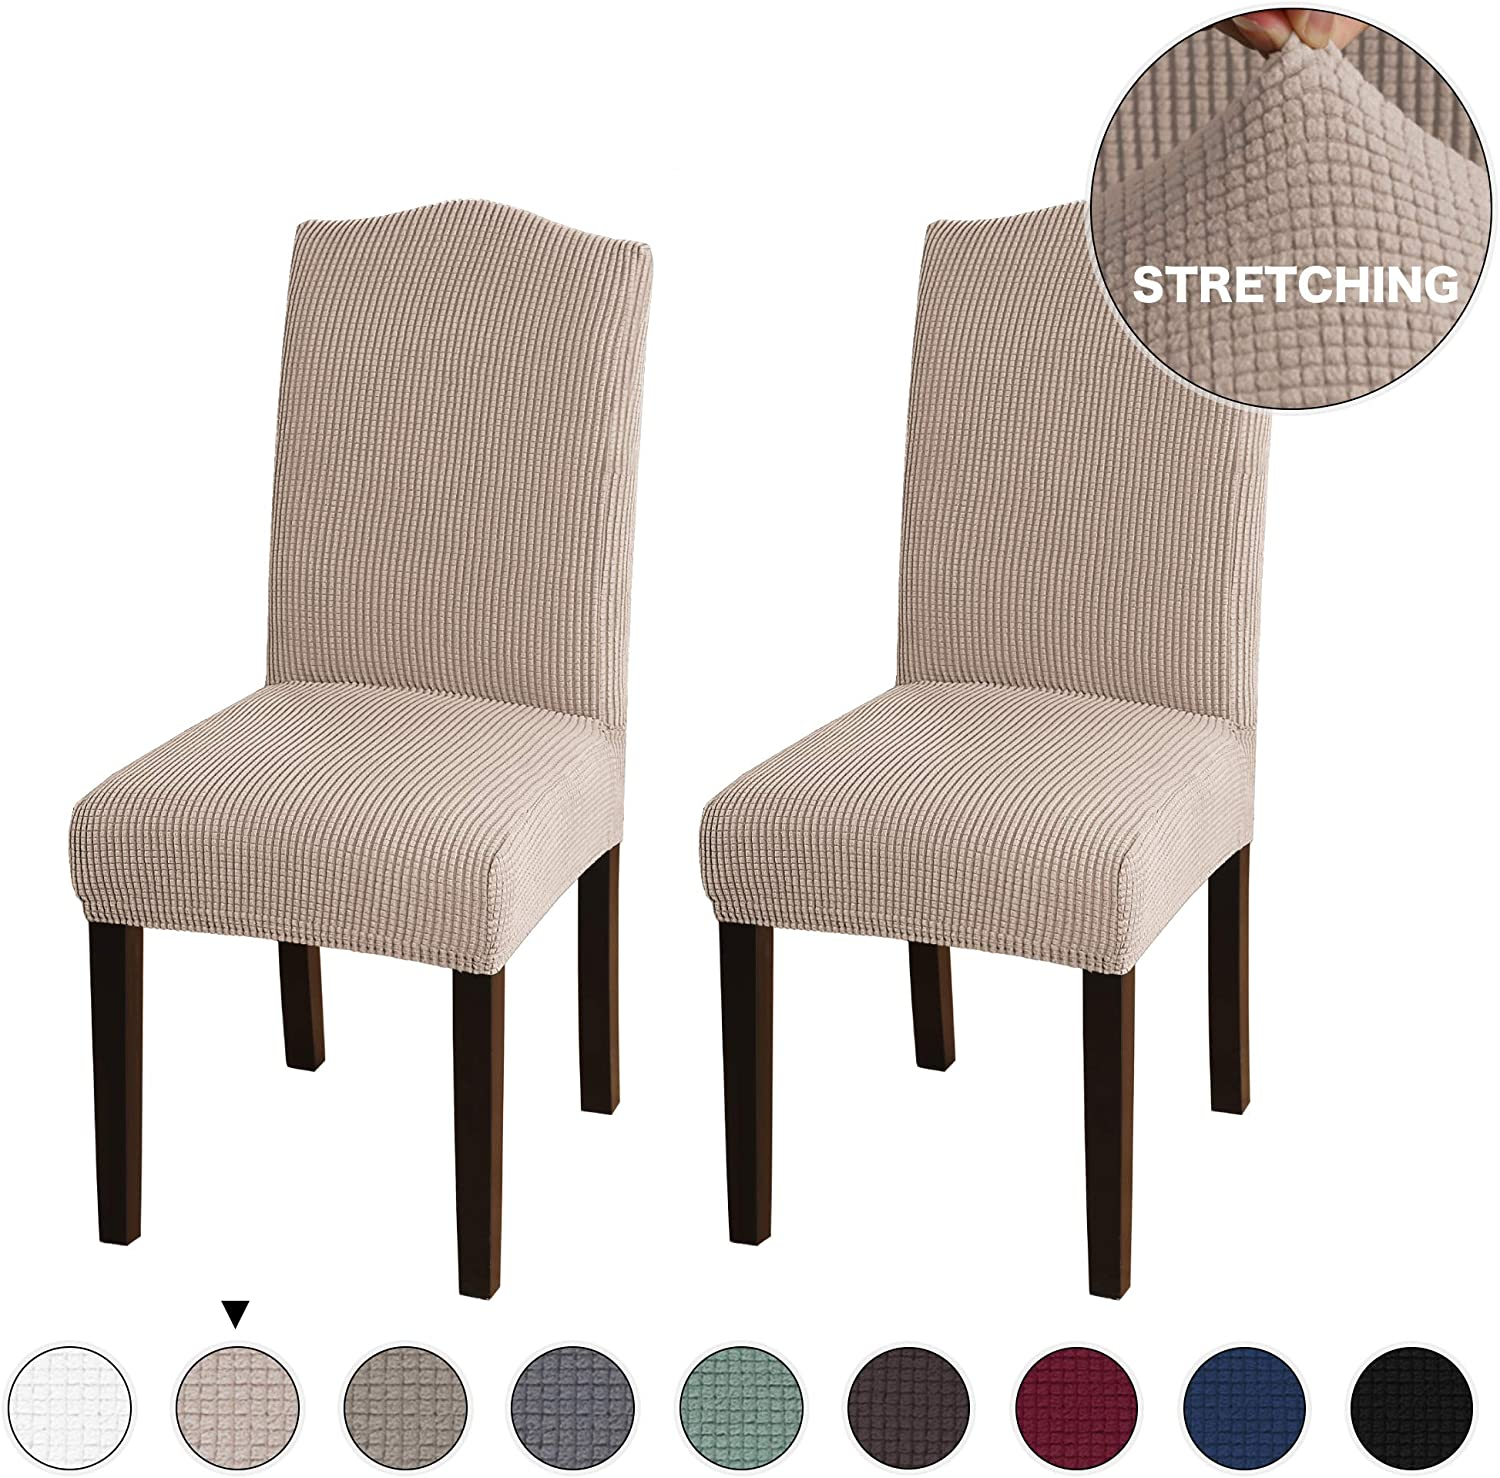 Turquoize Super Fit Stretch Removable Washable Dining Chair Protector Cover for Hotel, Dining Room, Ceremony, Banquet Wedding Party Modern Stretch Chair Covers, Set of 2, Khaki